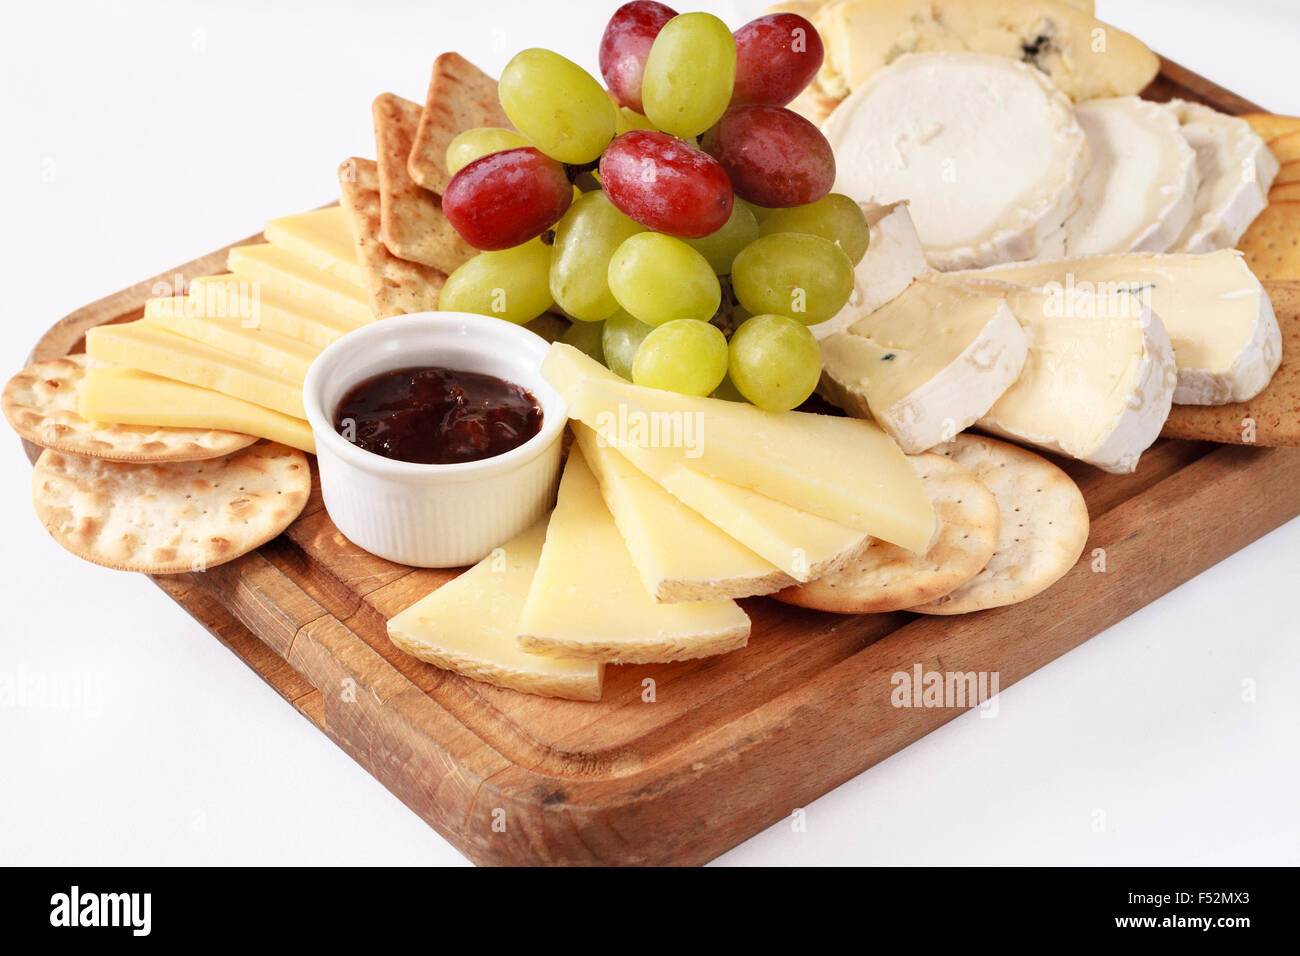 A platter of different cheese with grapes, biscuits, and raspberry jam on a wooden board isolated on White - Stock Image